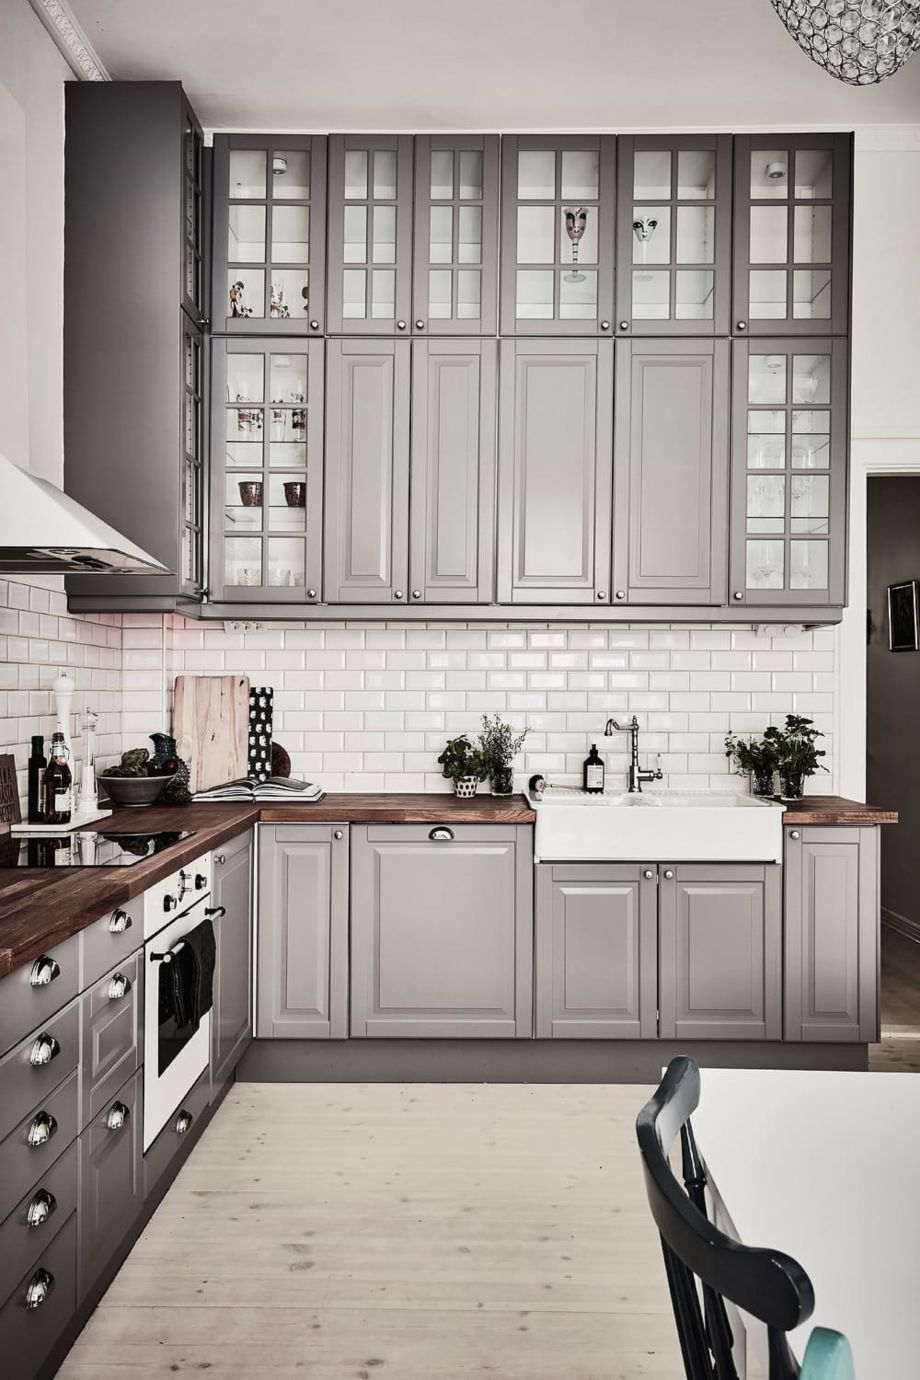 Gray color kitchen cabinets 46 | Pinterest | Color kitchen cabinets ...